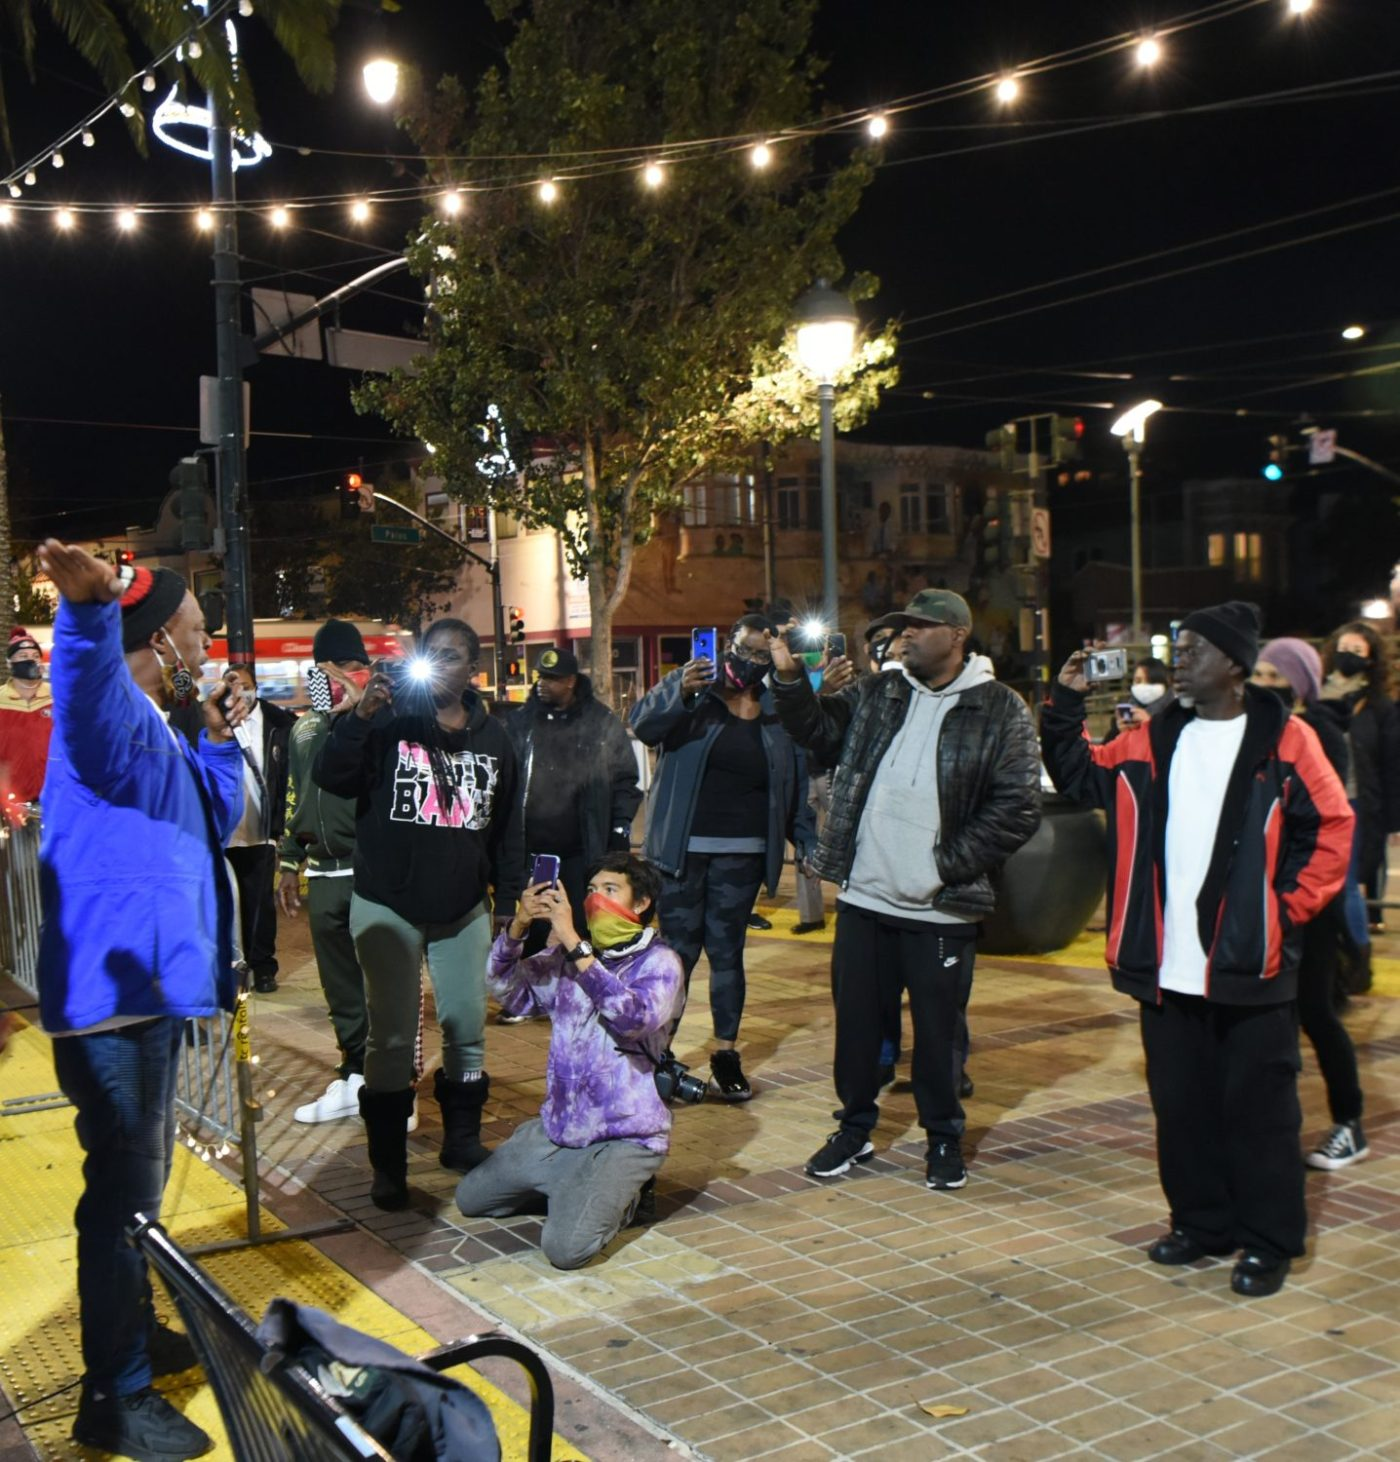 Celebrating-Bayview-Hunters-Point-Community-Mendell-Plaza-crowd-Ezra-photographs-Ravaa-112020-by-Johnnie-Burrell-2-1400x1462, A look at the Bay View's fabulously successful 2020 fundraiser!, Culture Currents